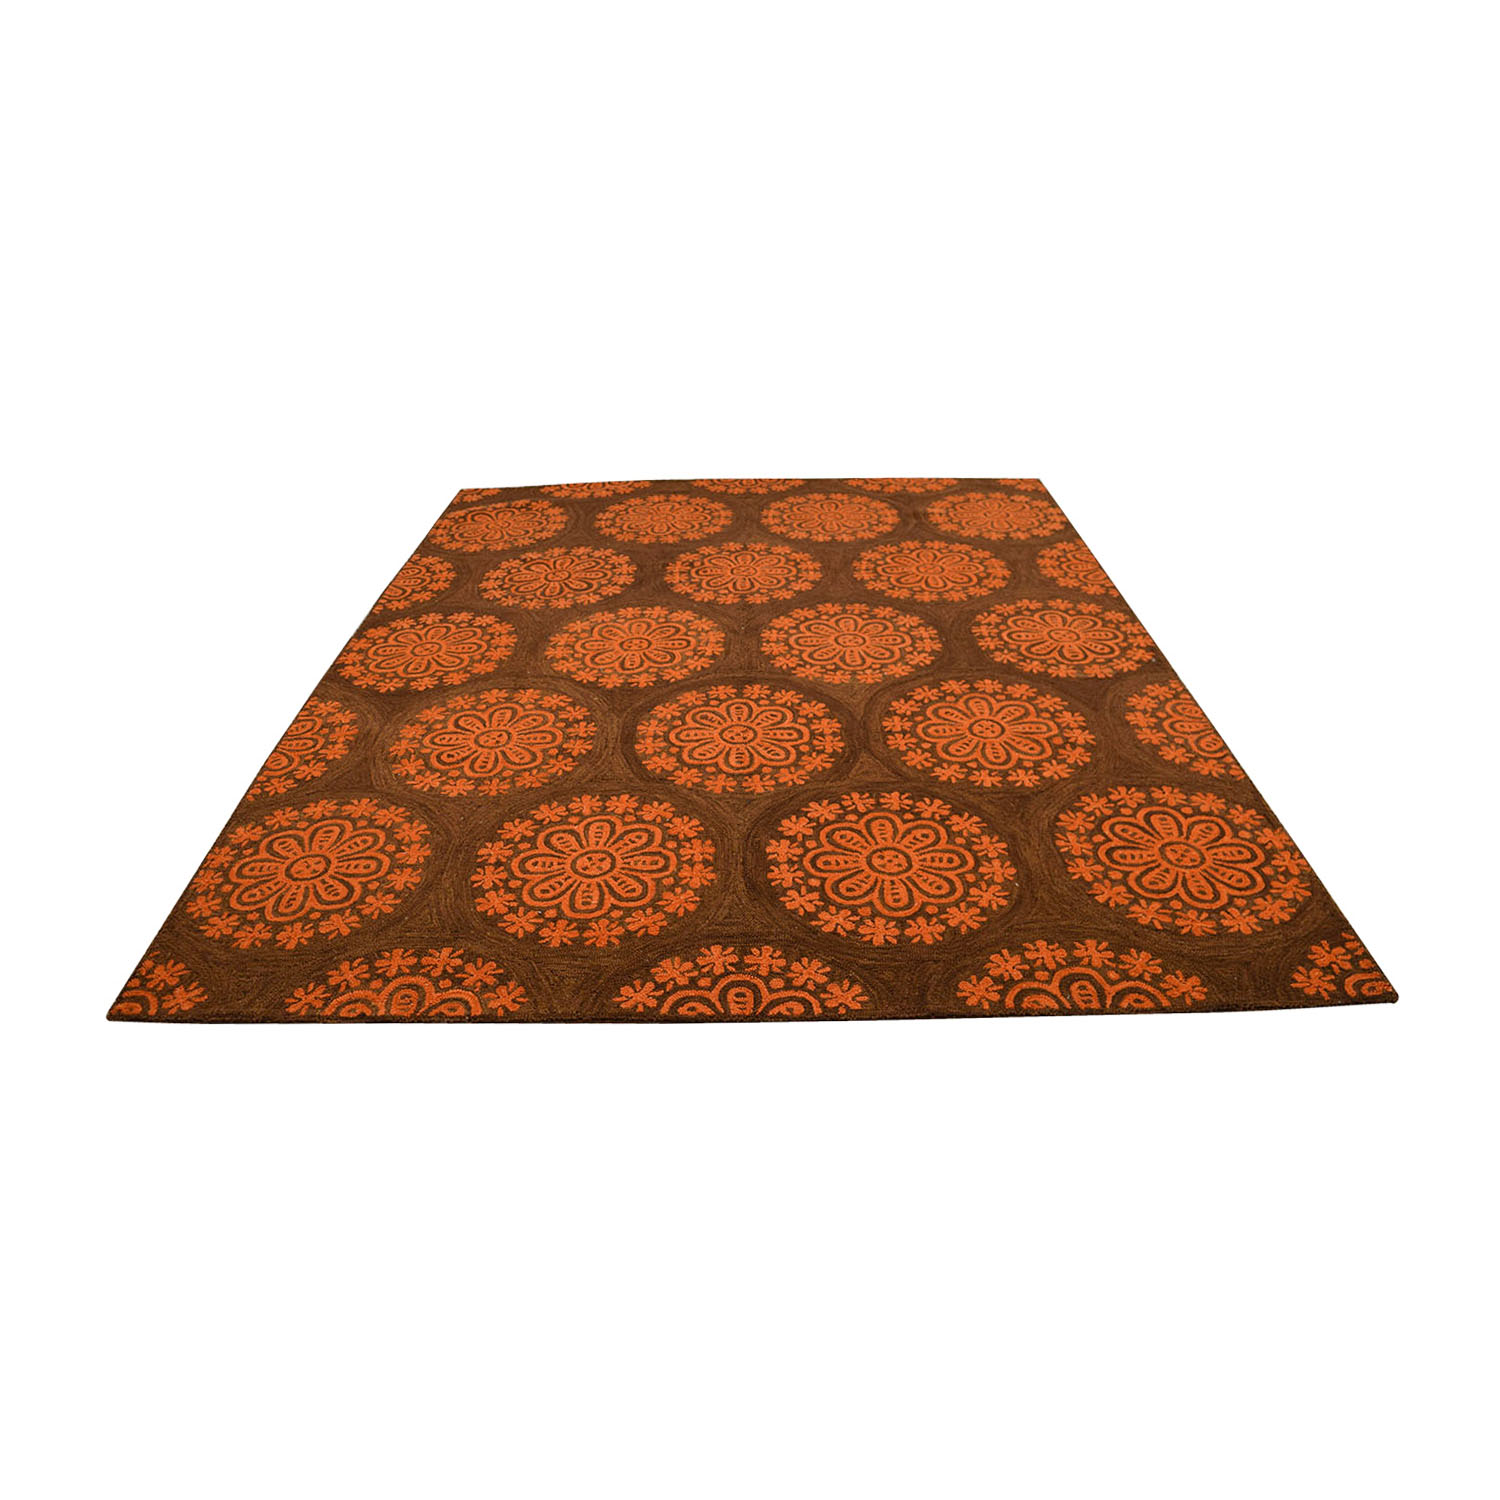 Obeetee Brown and Orange Floral Mediallion Rug Obeetee